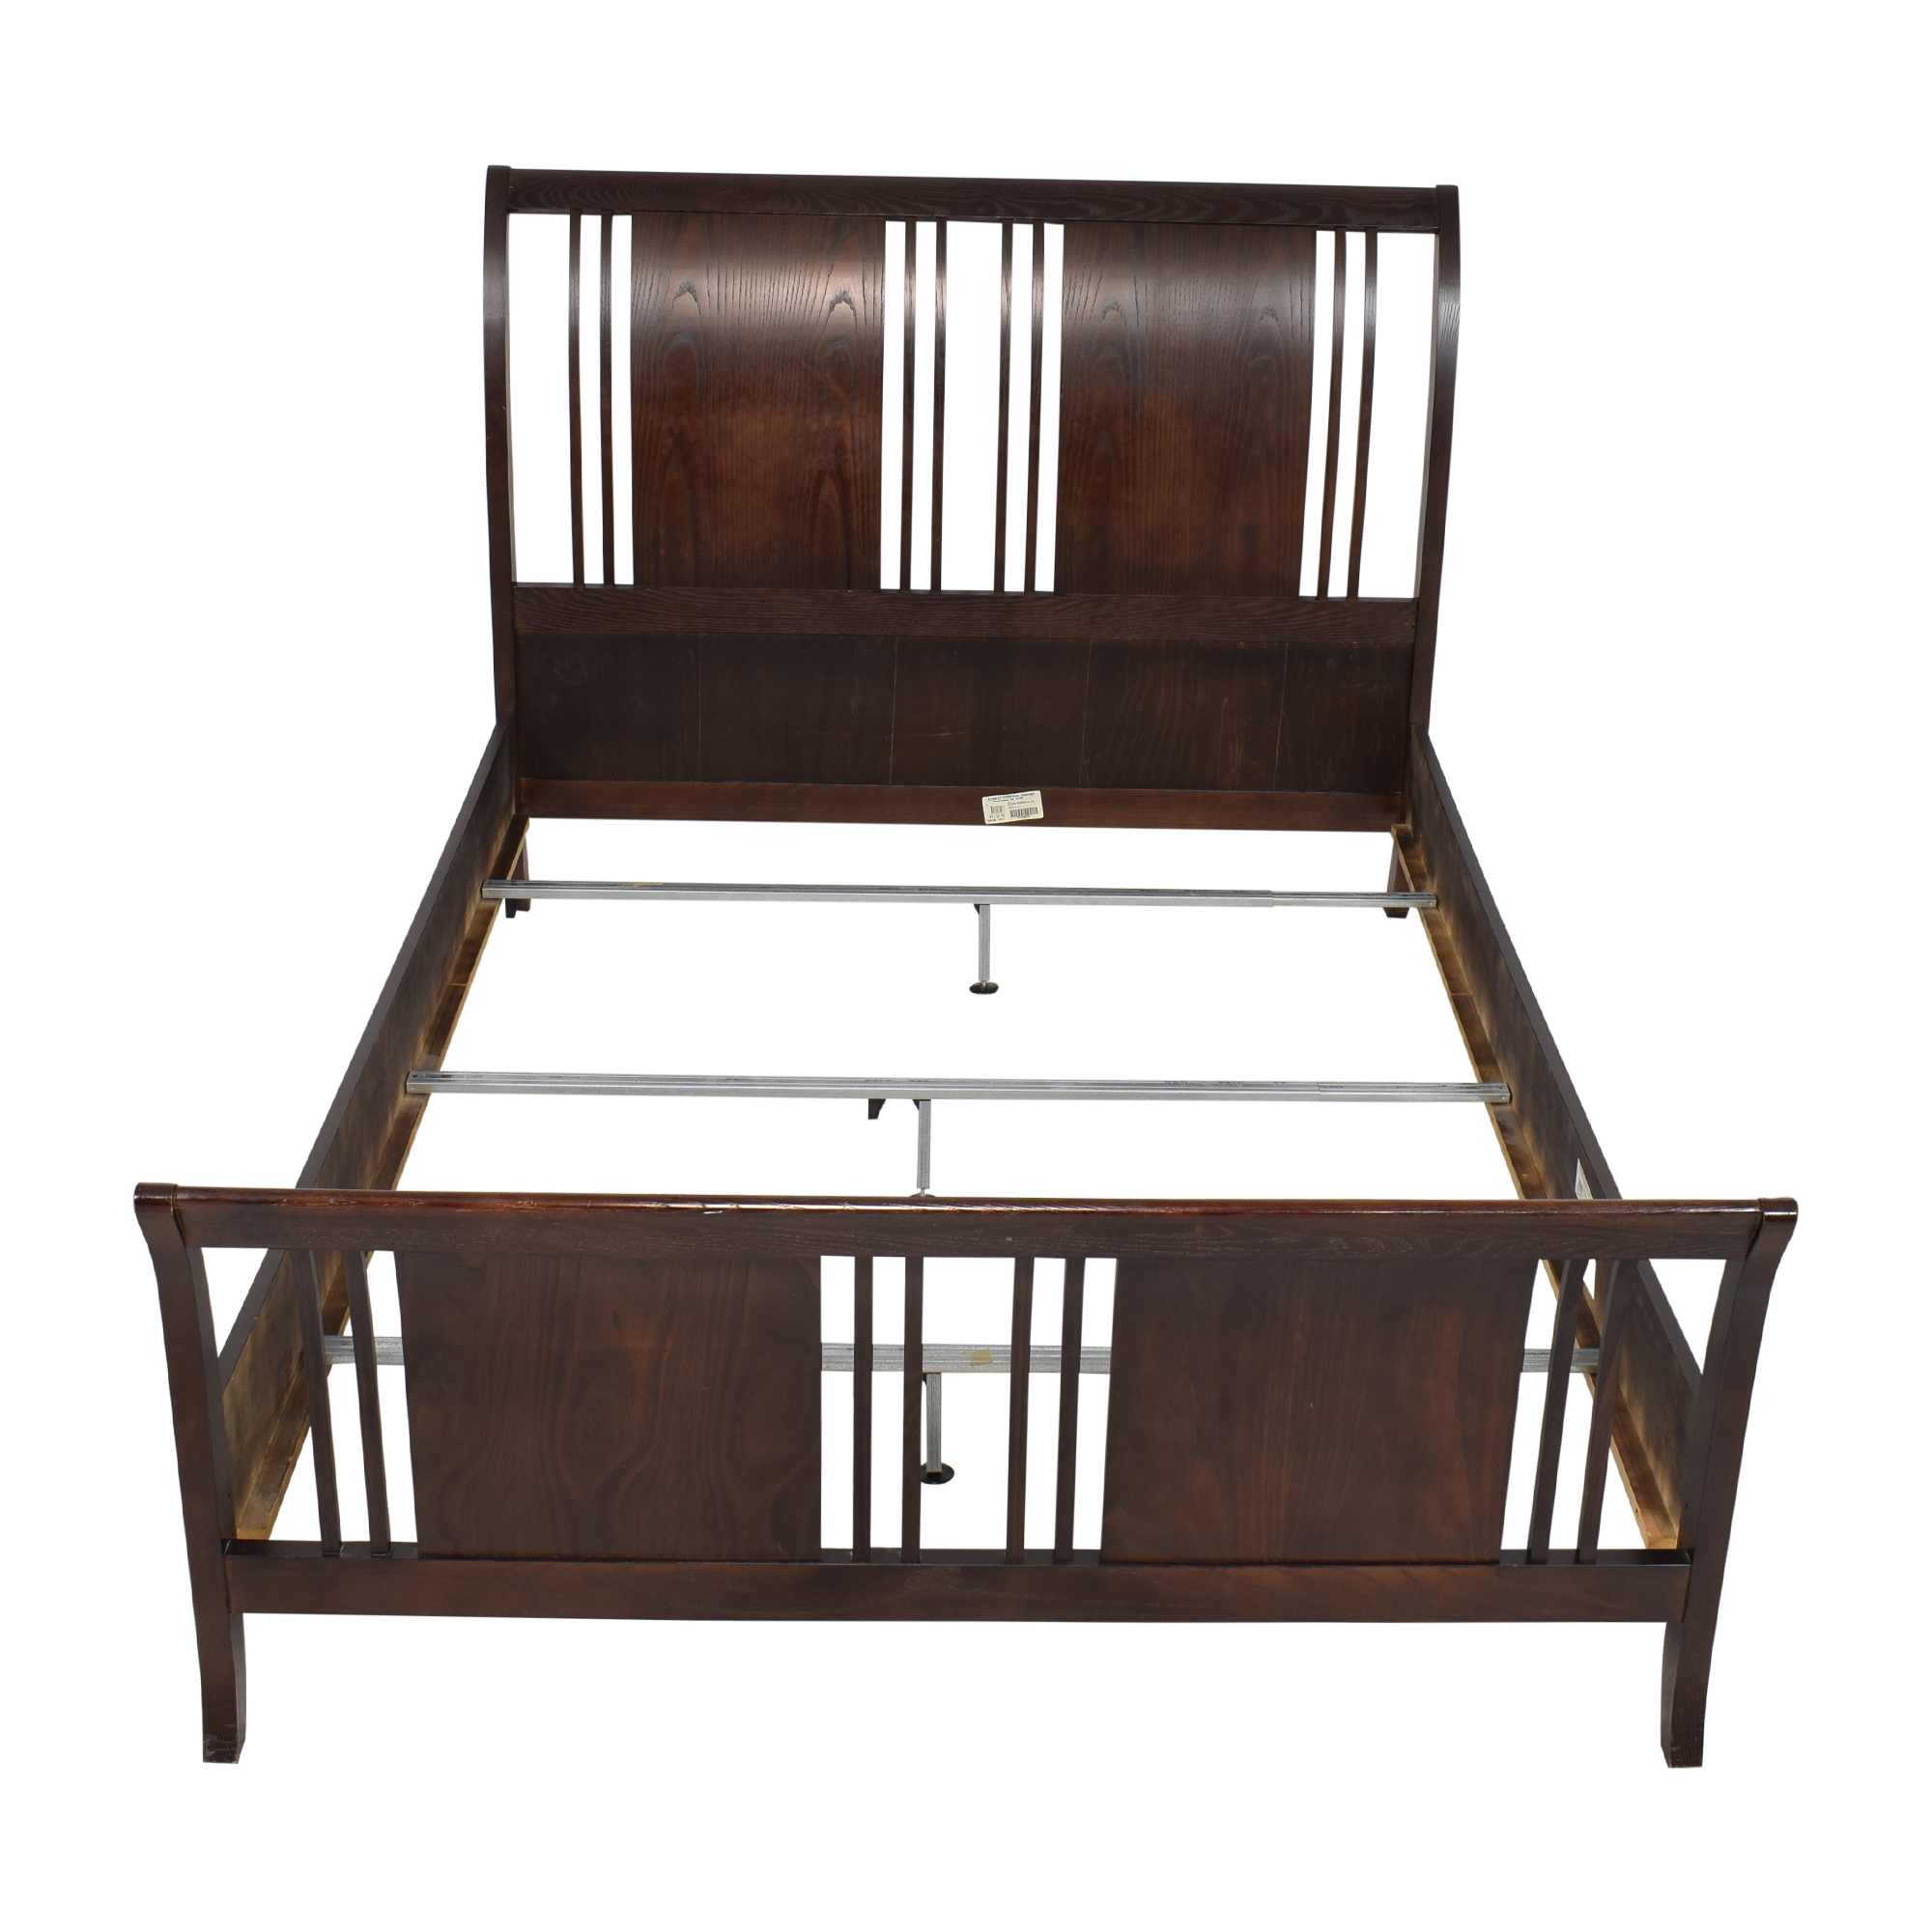 Stanley Furniture Stanley Furniture Queen Sleigh Bed ma